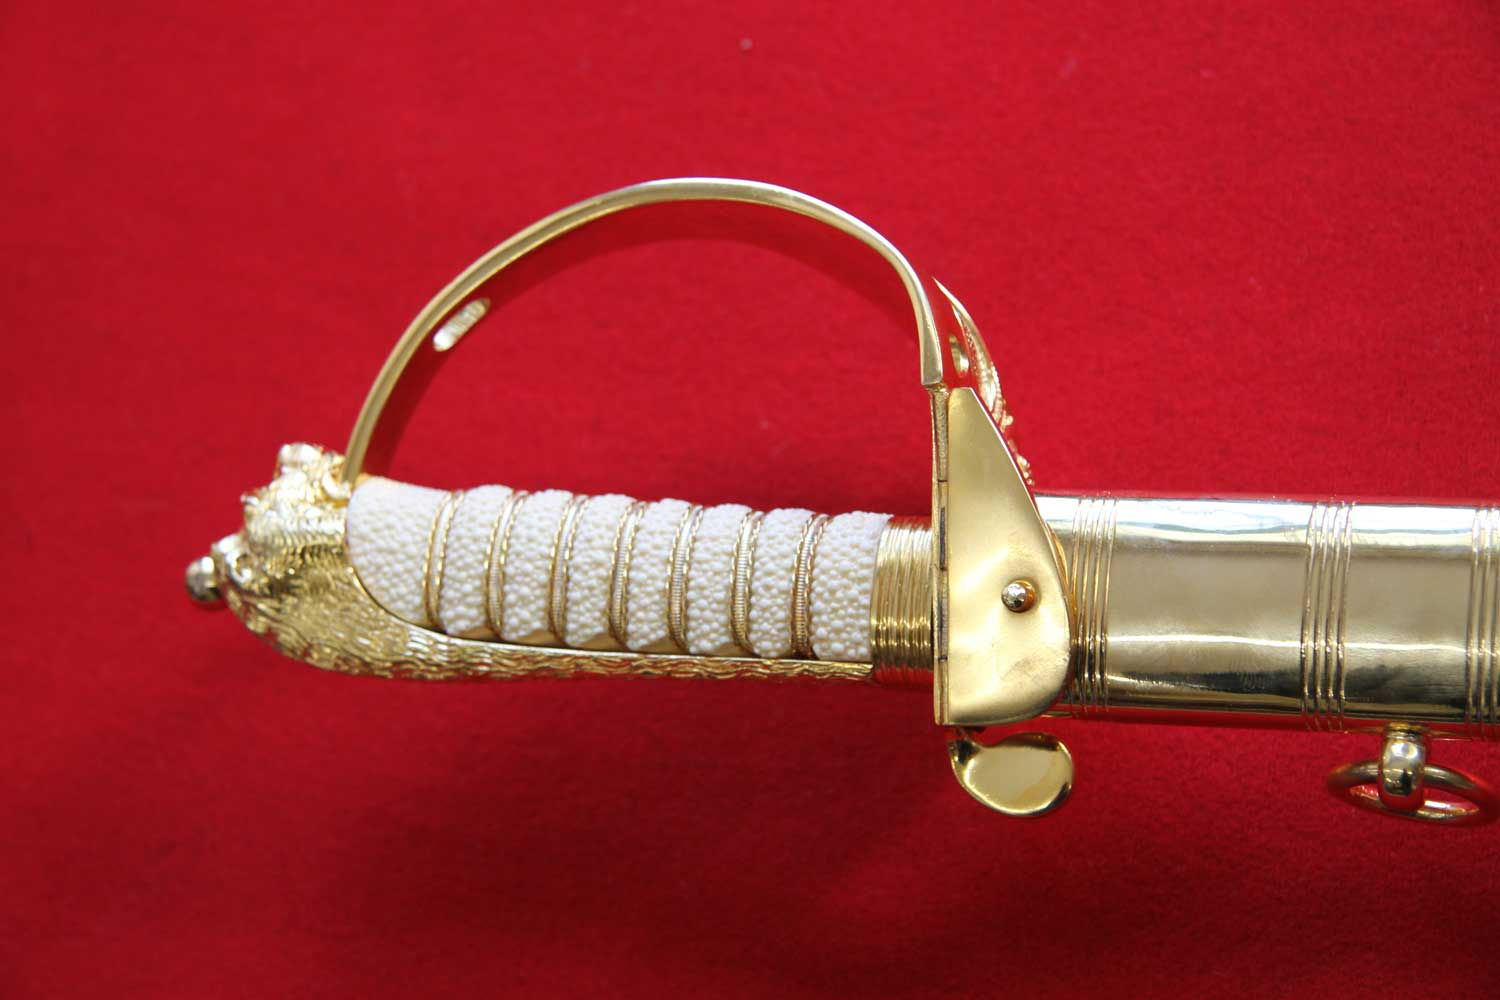 British, 1827 Naval Officer's Sword - Click Image to Close